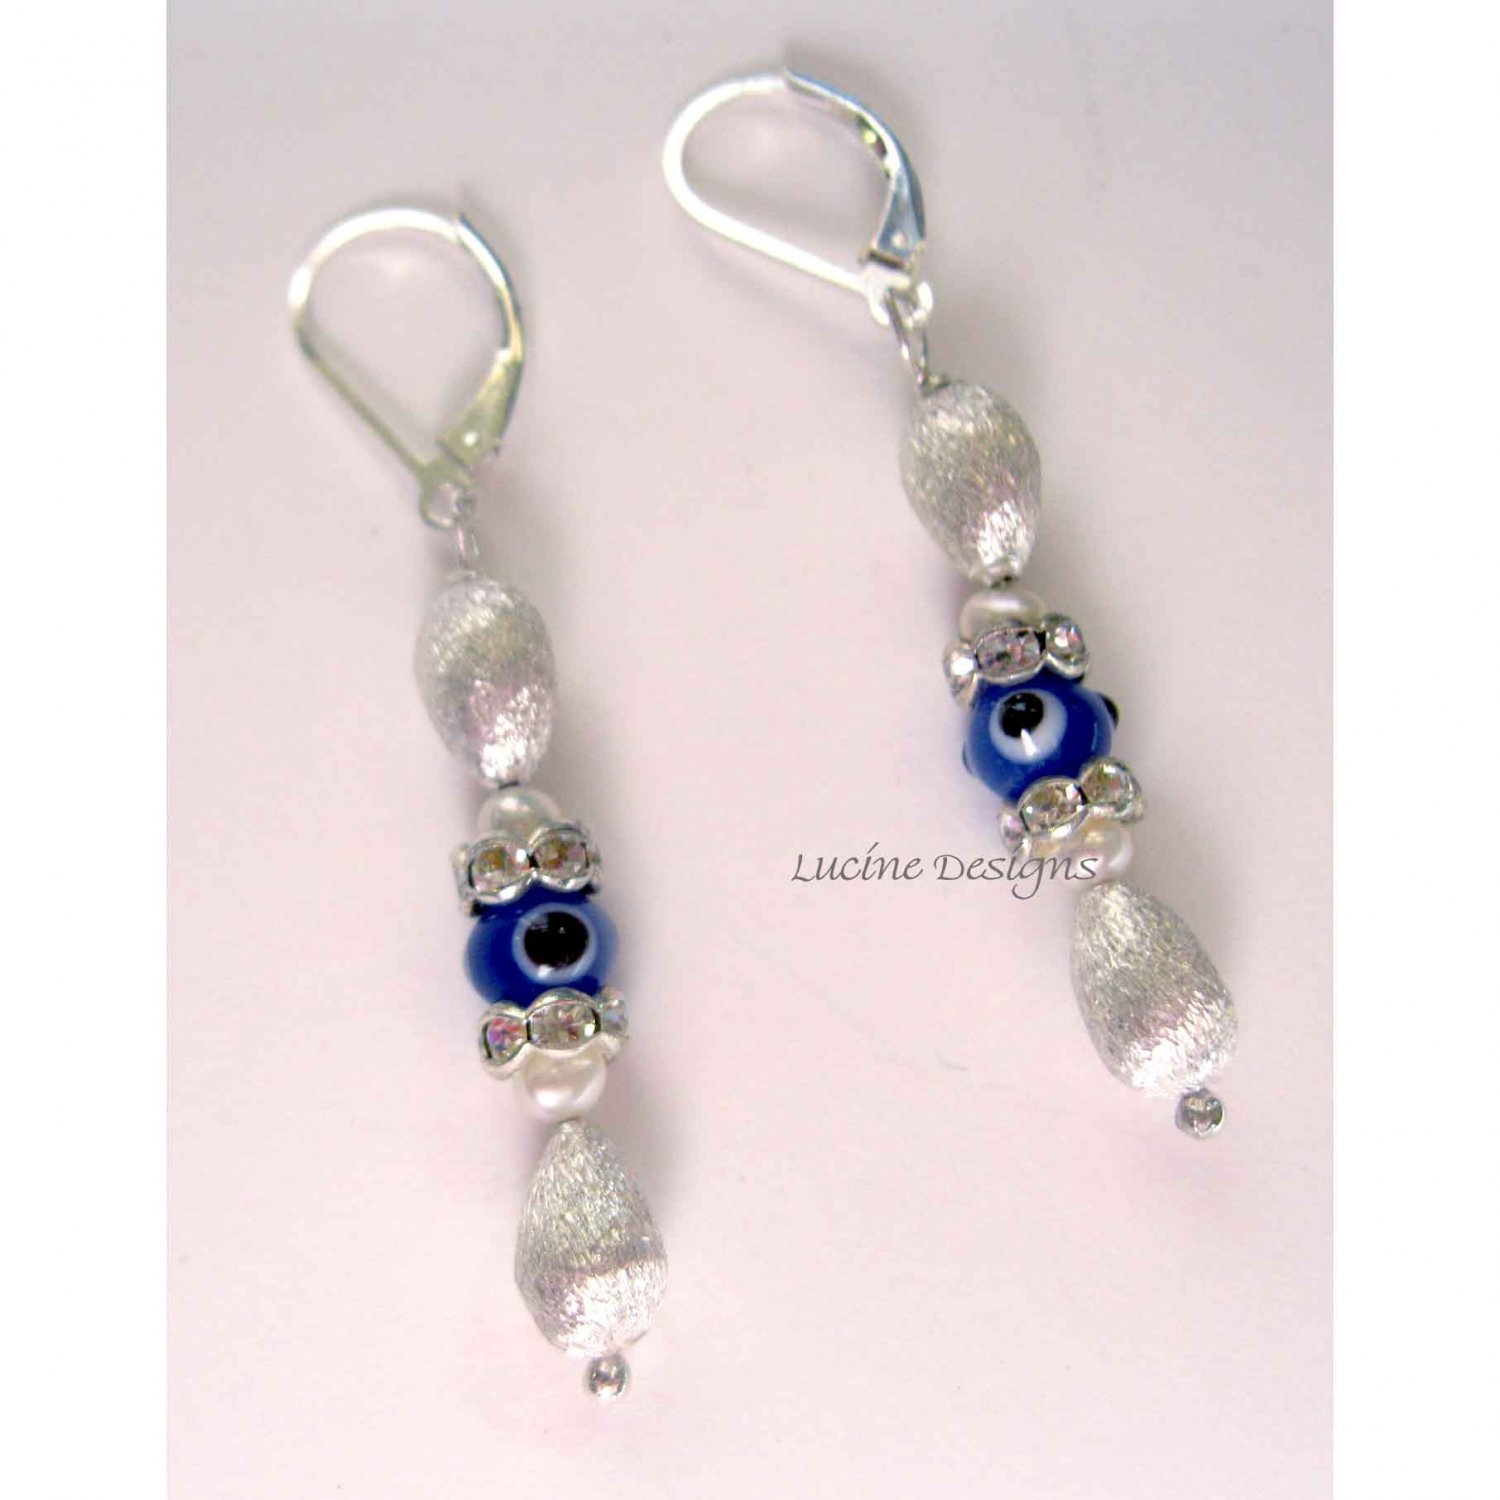 Blue evil eye sterling silver with pearls and crystals earrings